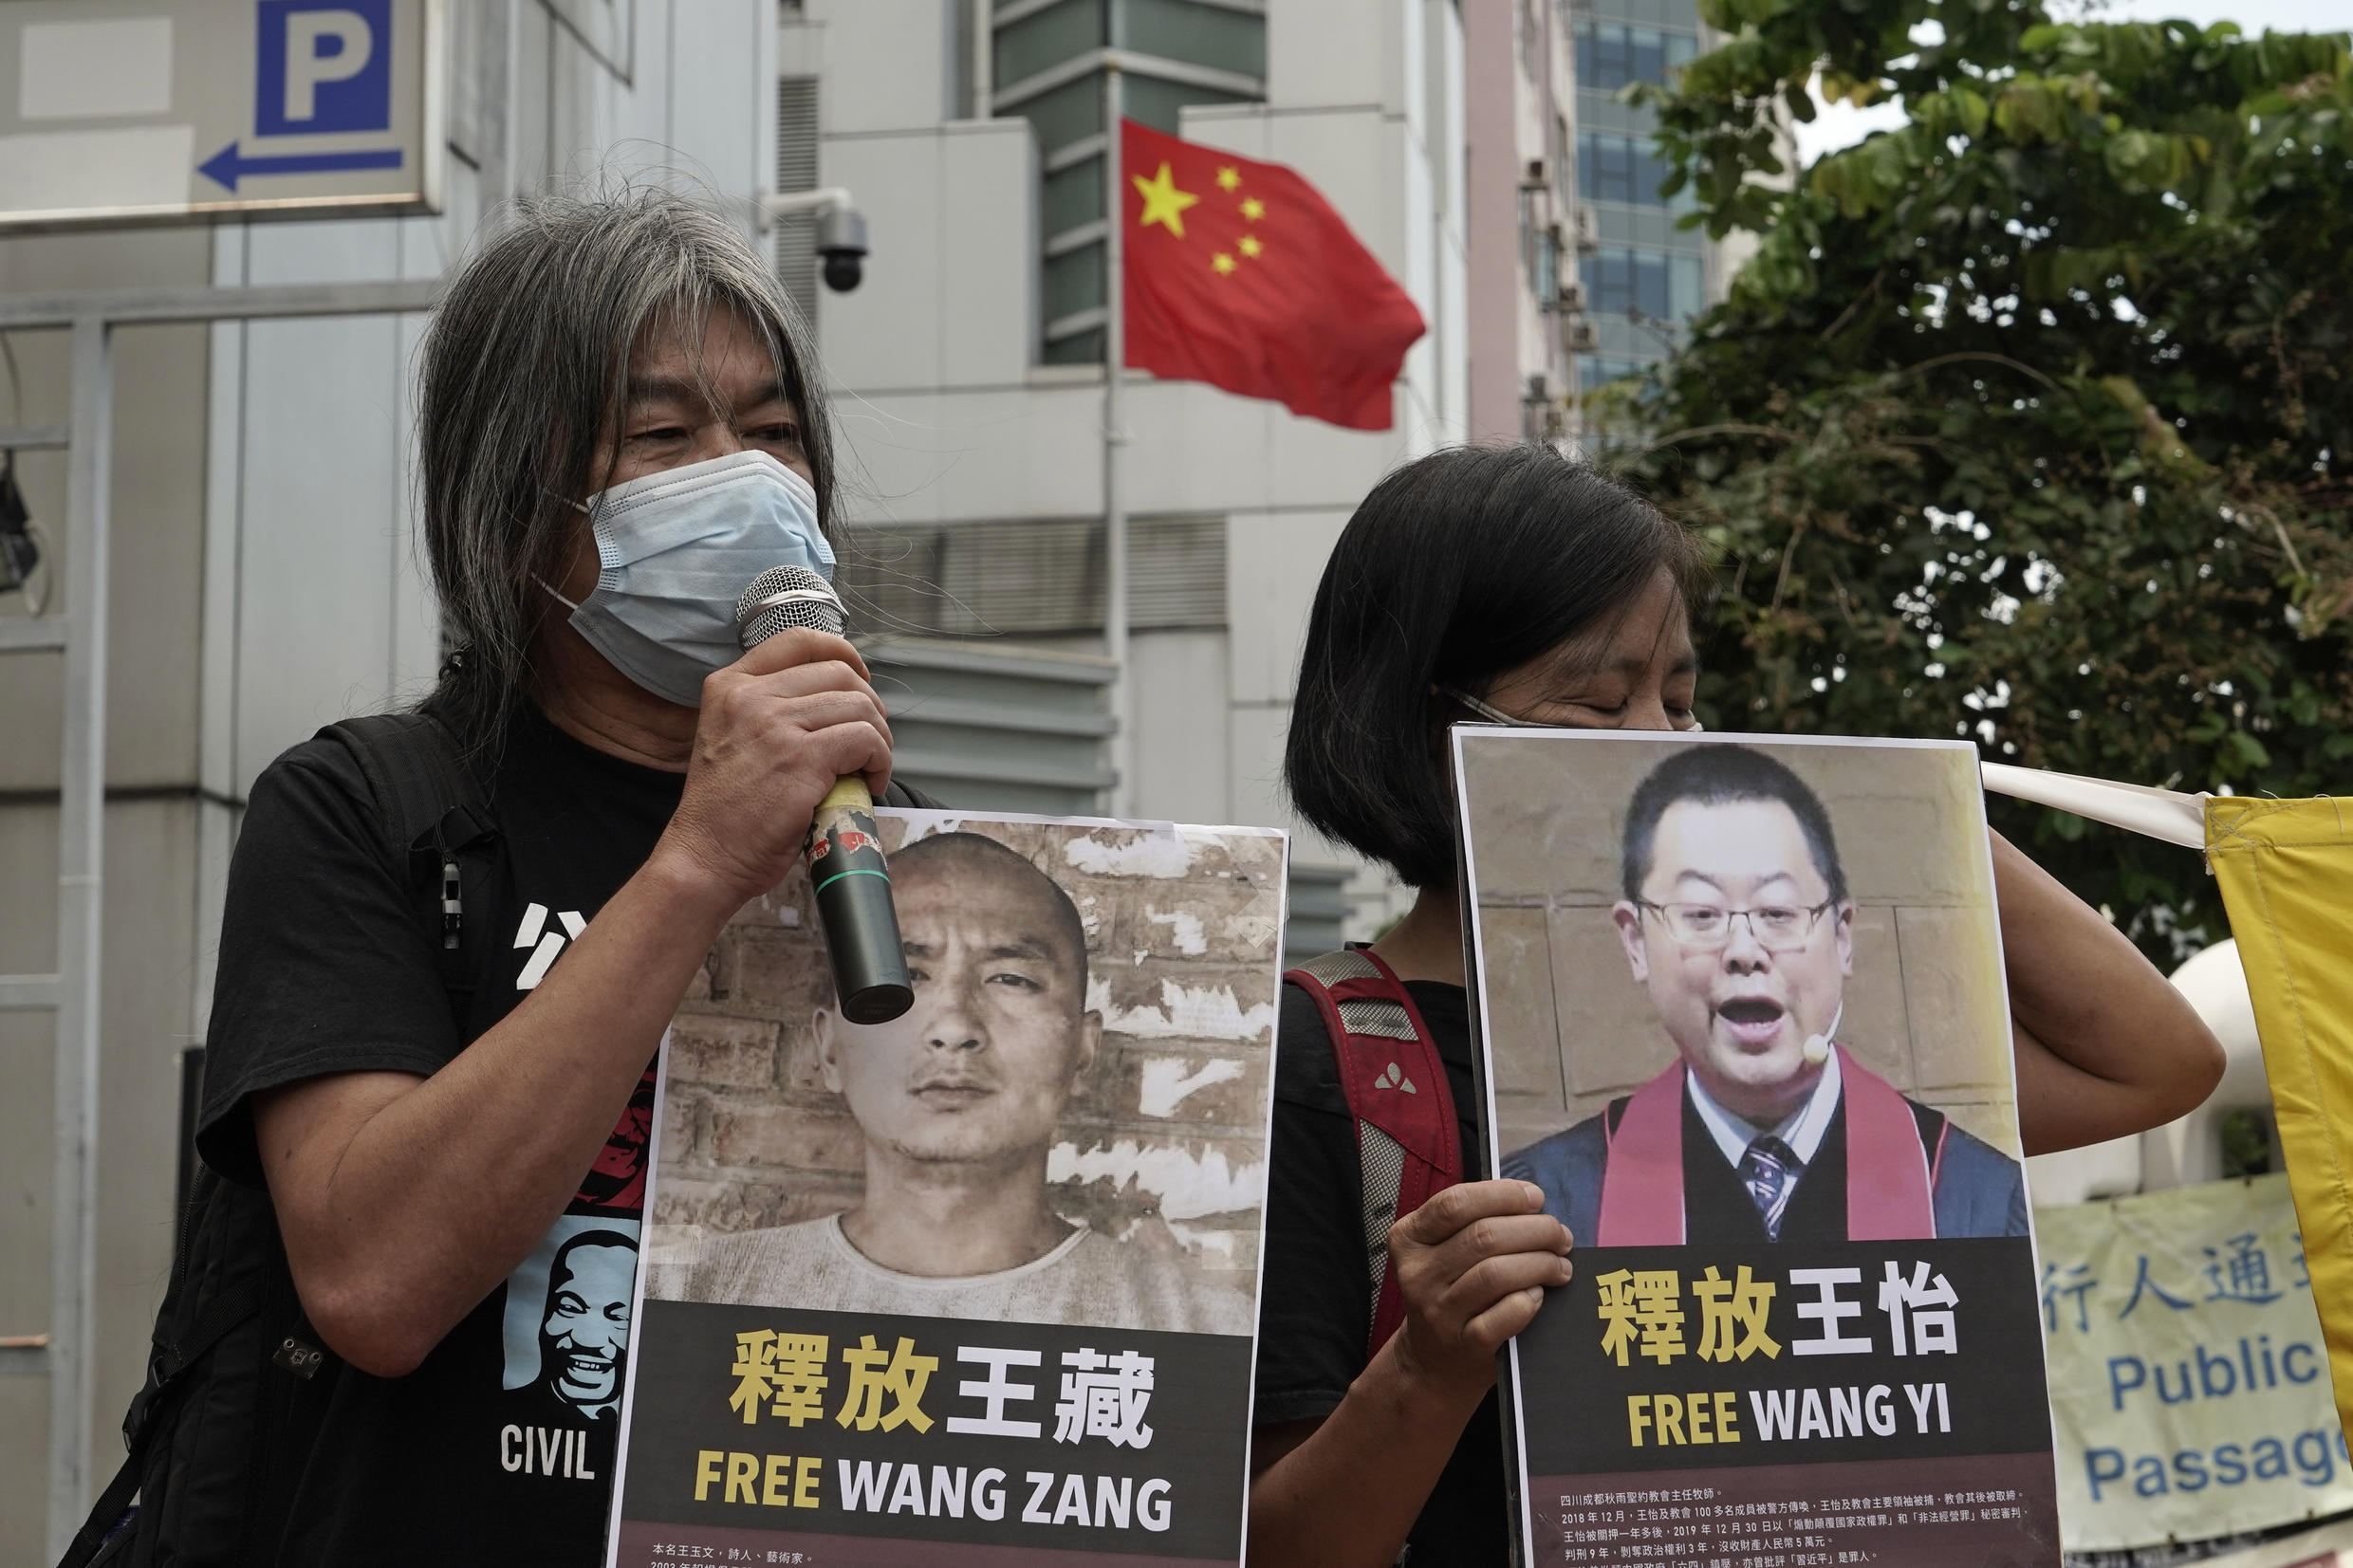 ro-democracy activists holding picture of detained Chinese human rights activists, protest outside the Chinese liaison office in Hong Kong, Thursday, Oct. 1, 2020 on the occasion of the China's National Day. They demanded to release the 12 Hong Kong activists detained at sea by Chinese authorities.